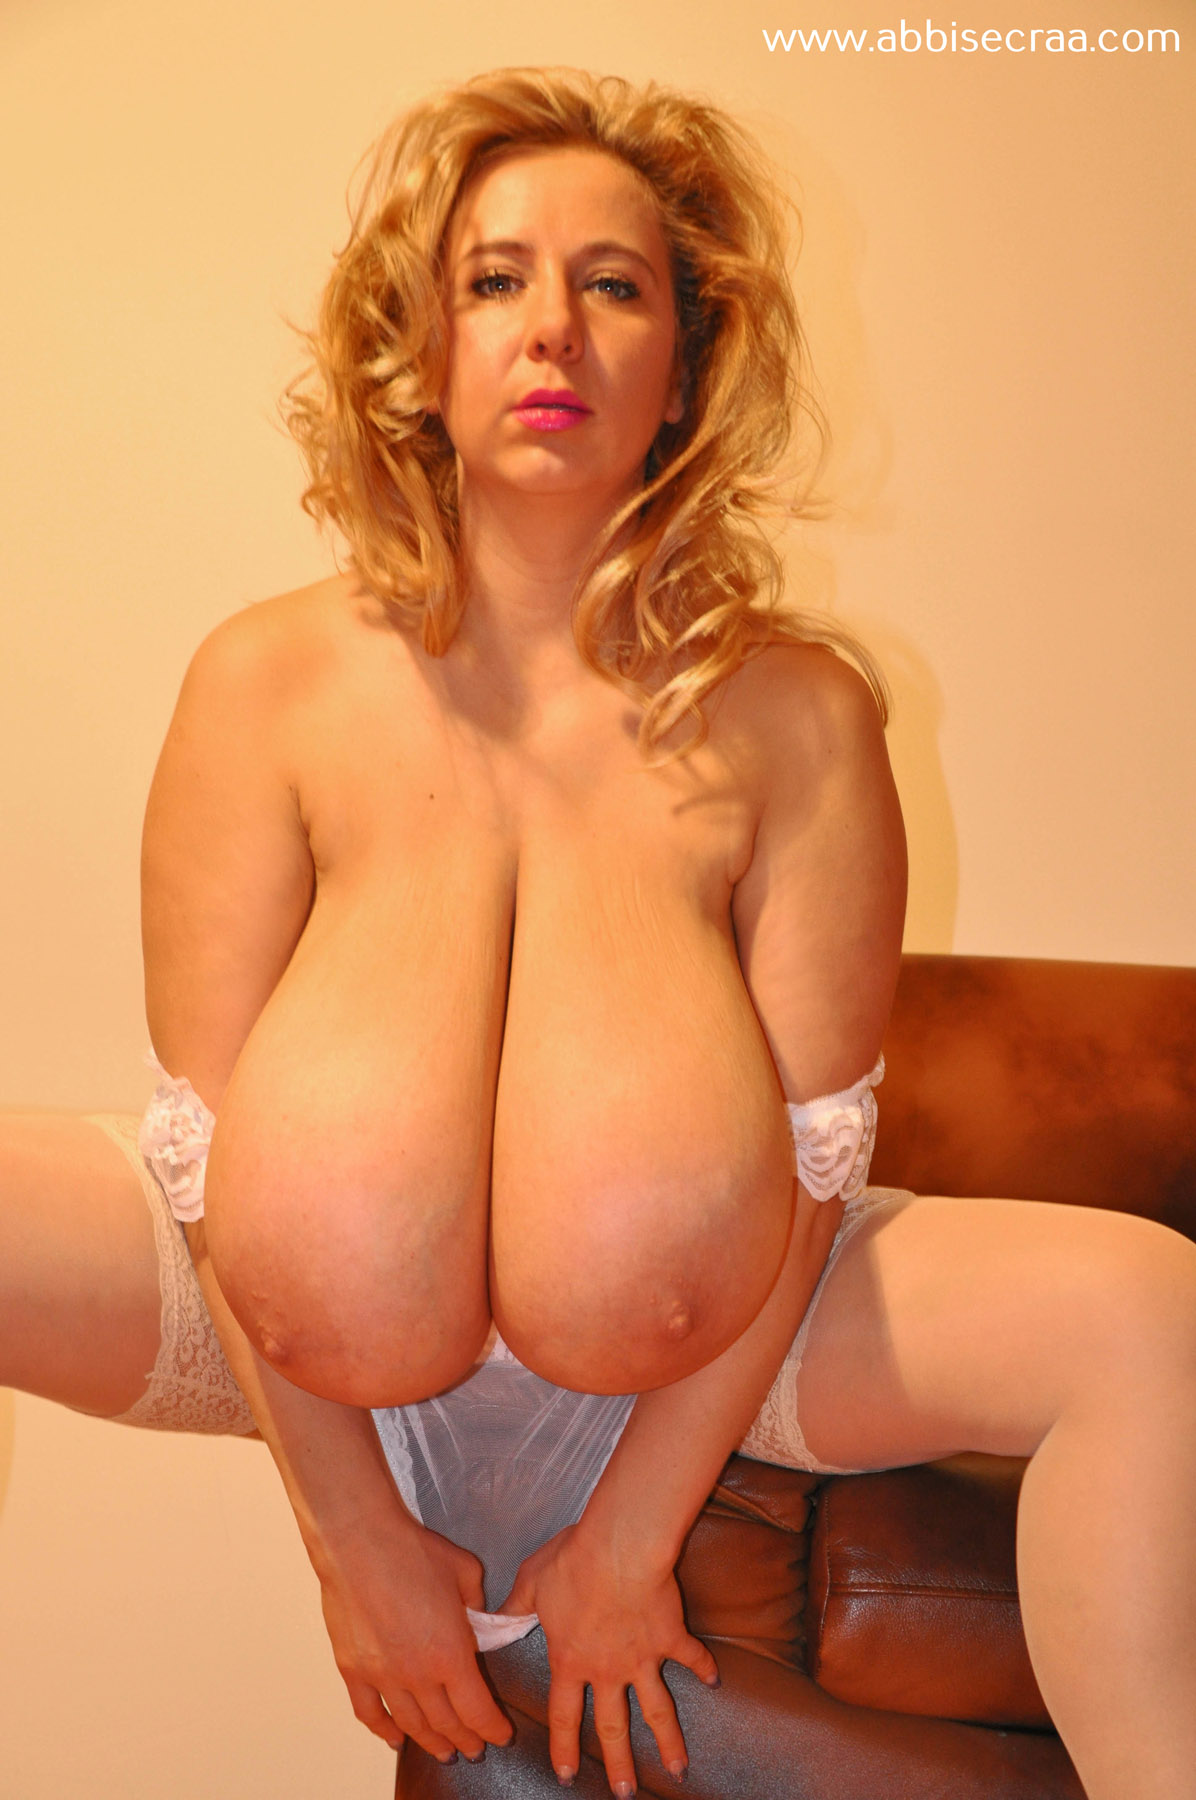 Amateur posing her gigantic tits in the webcam - 3 10